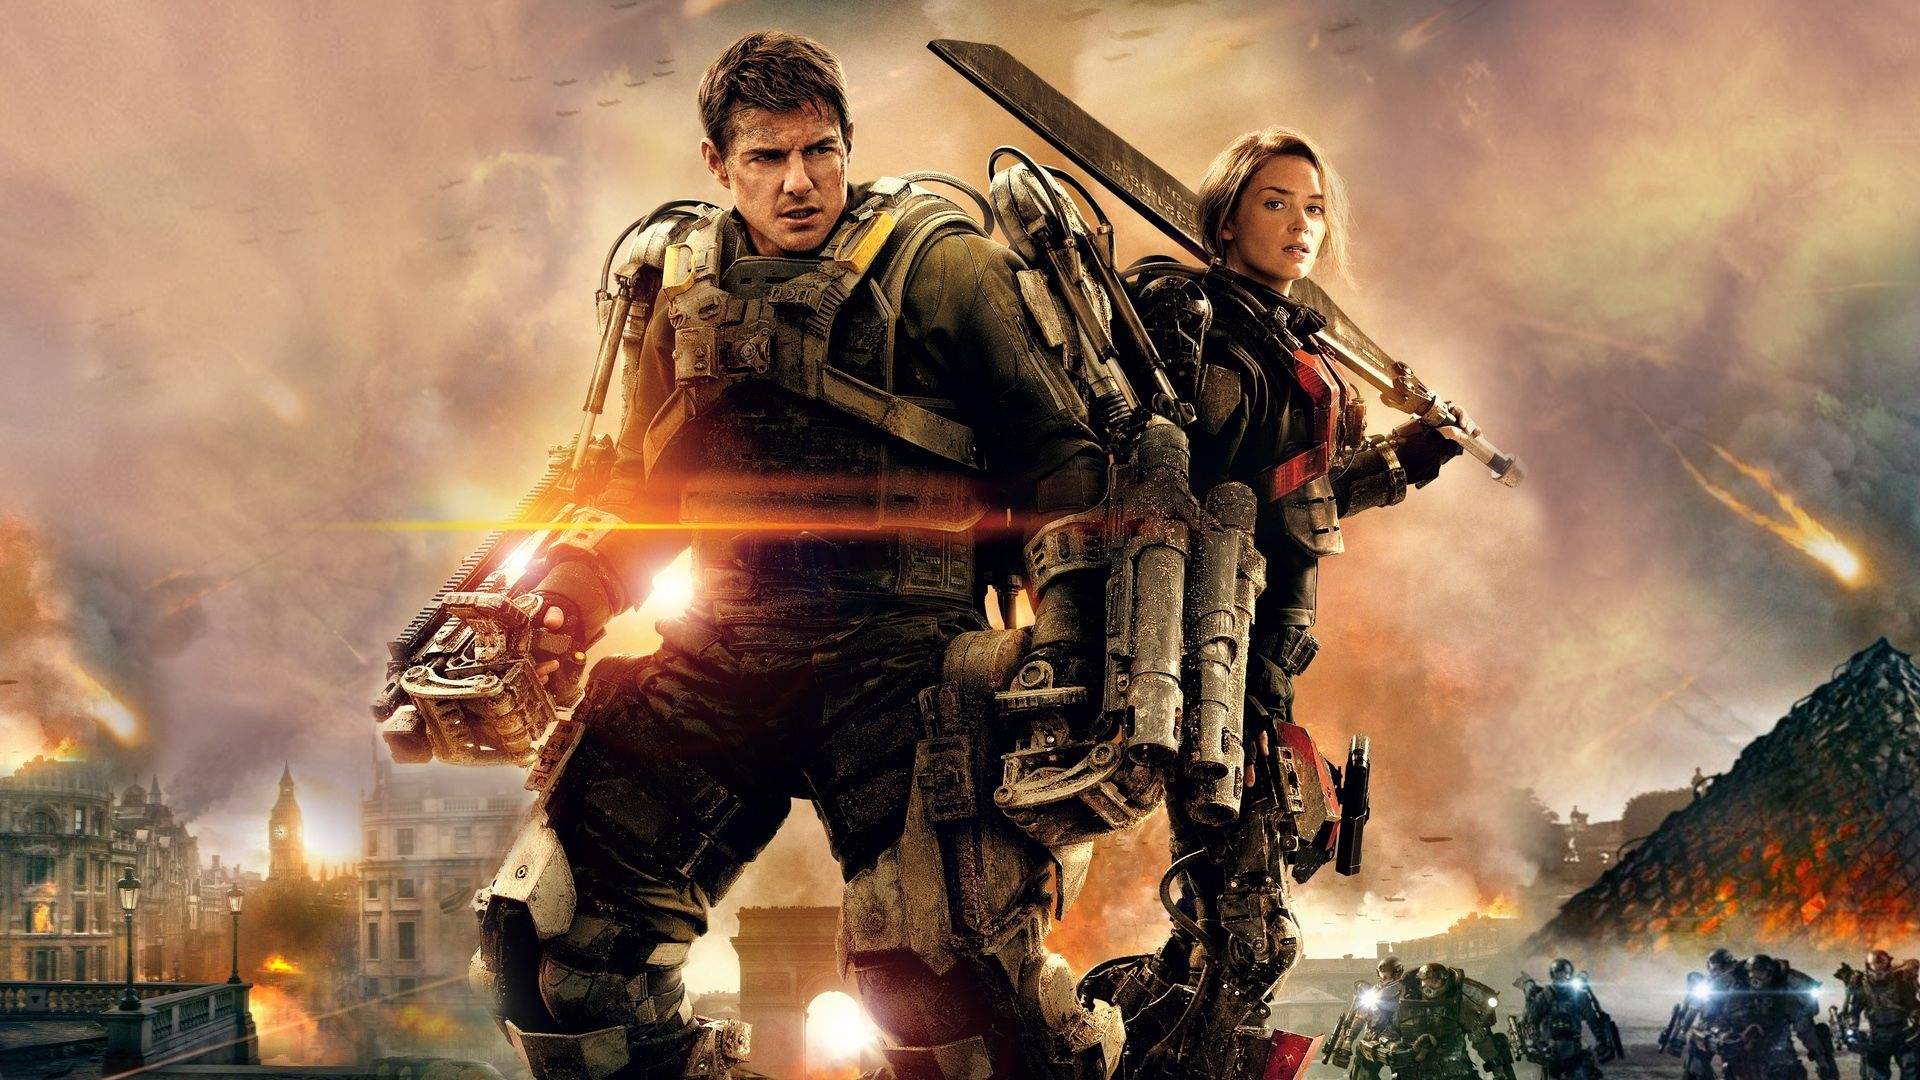 Edge Of Tomorrow Wallpapers Top Free Edge Of Tomorrow